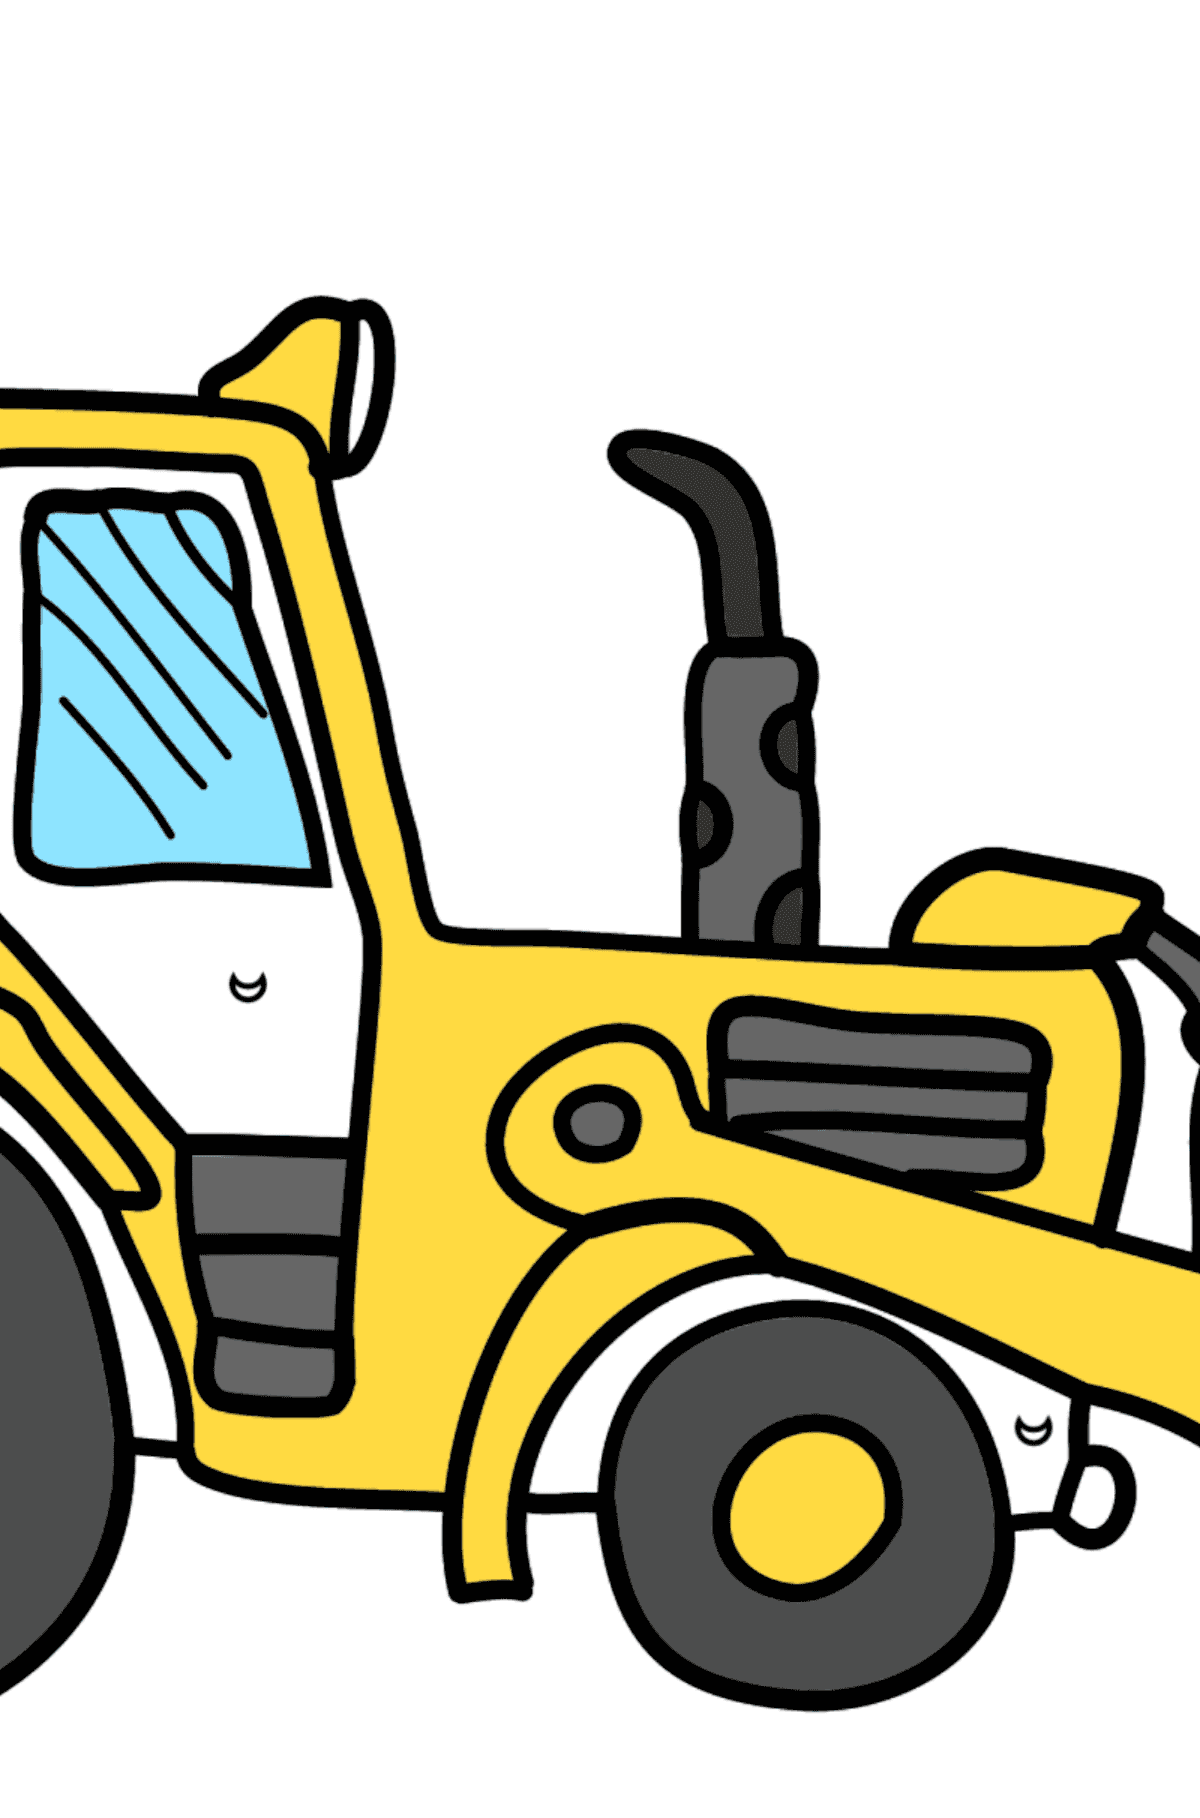 Coloring Page - A Yellow Tractor - Coloring by Geometric Shapes for Kids